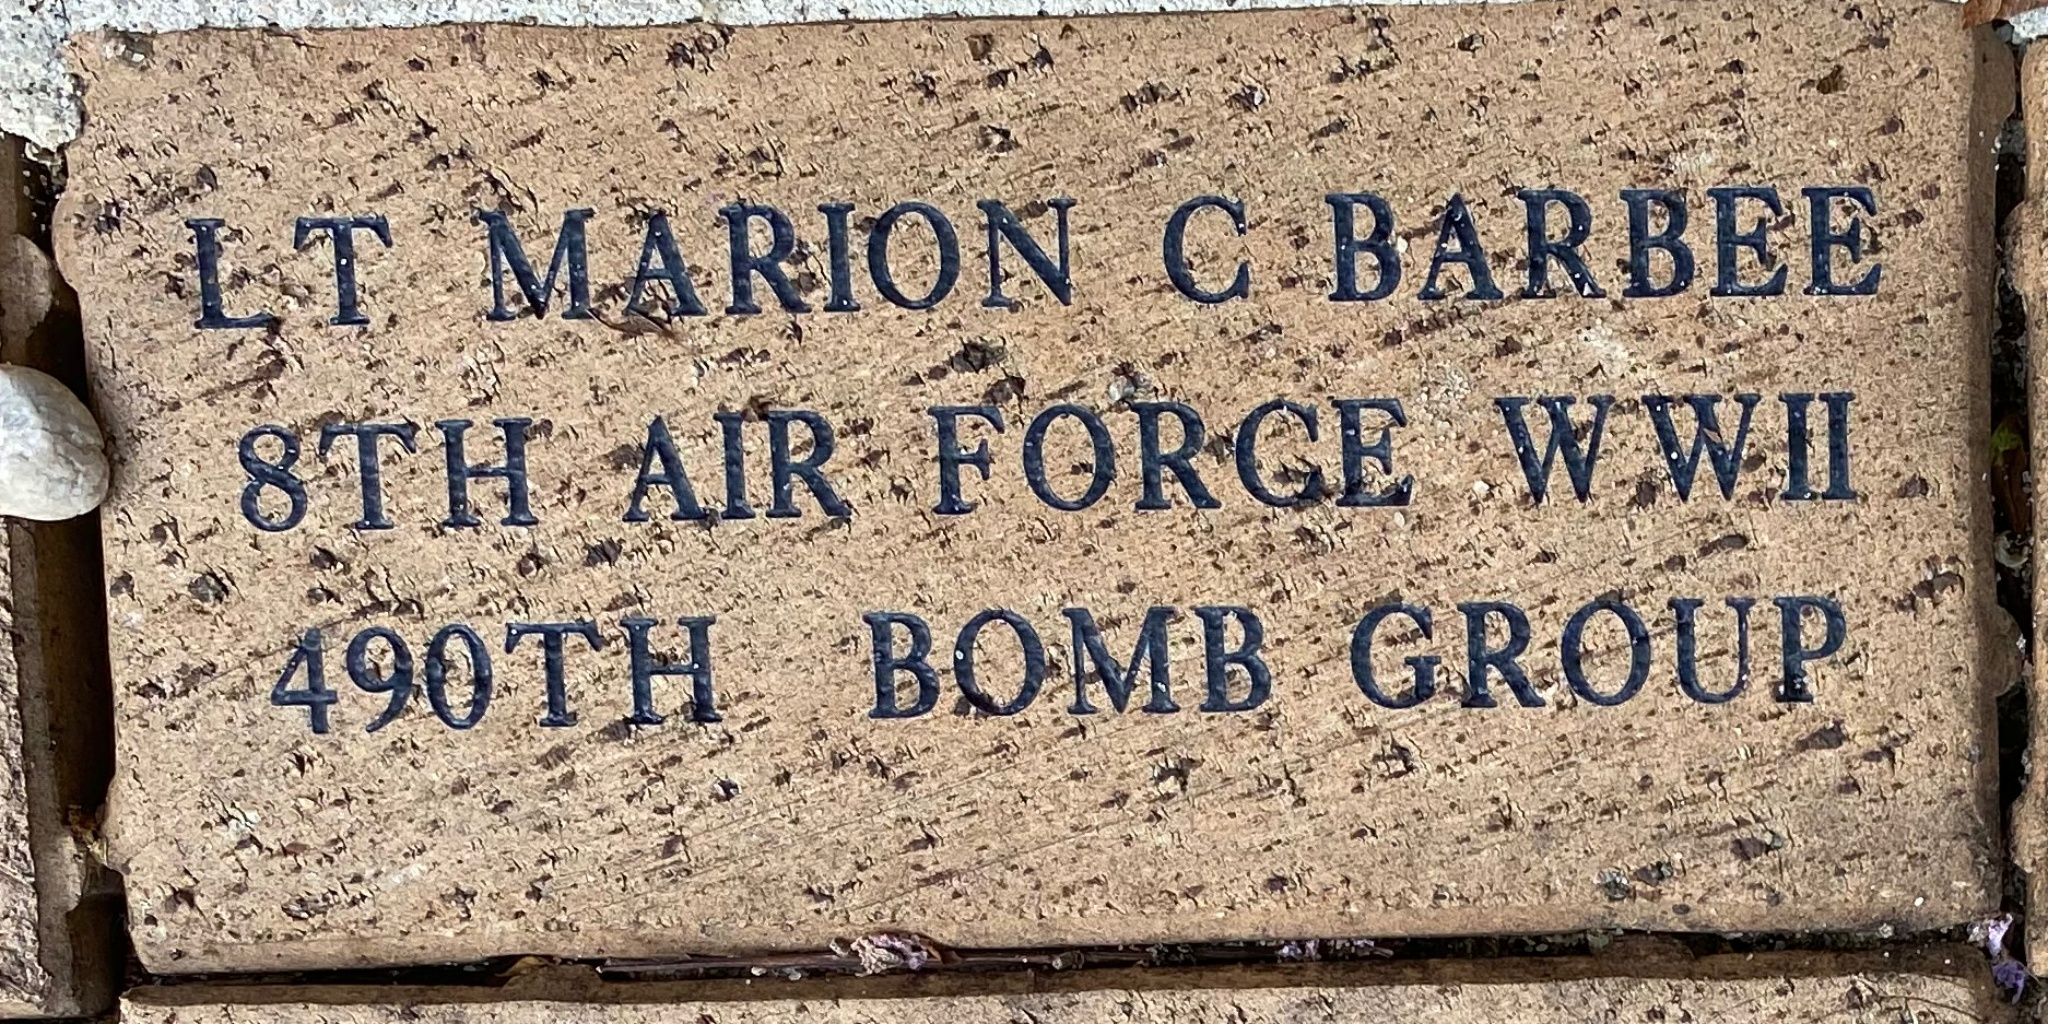 LT MARION C BARBEE 8TH AIR FORCE WWII 490TH BOMB GROUP